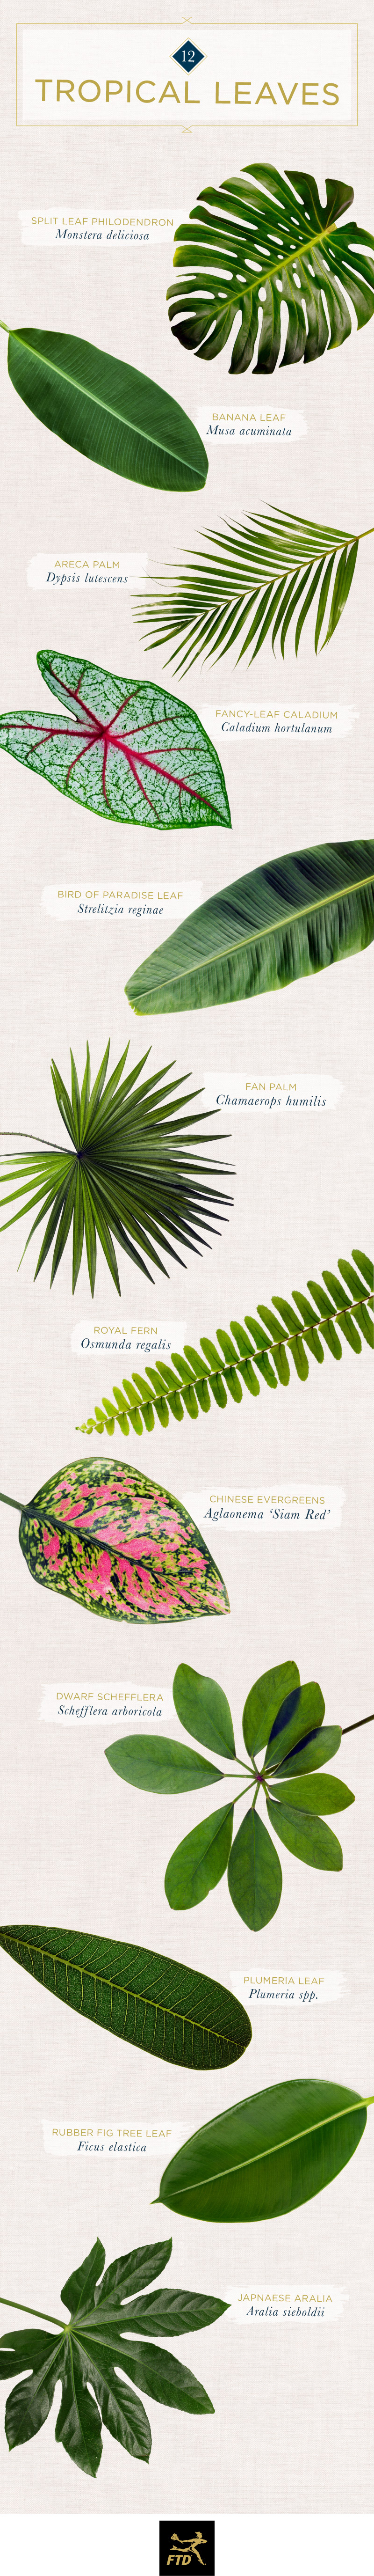 tropical leaves infographic